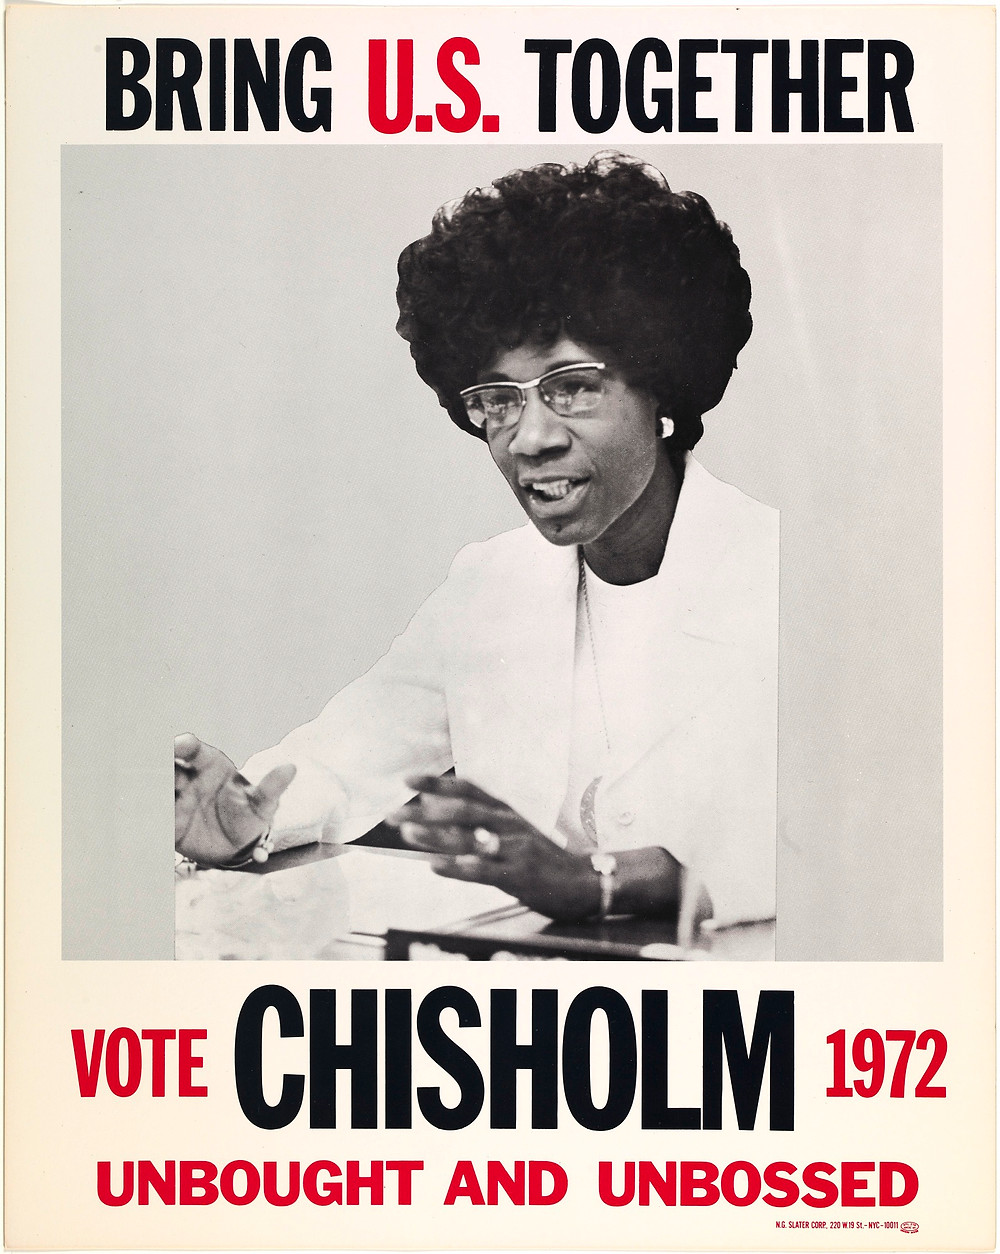 This poster was used in her 1972 run for the Democratic Party's presidential nomination.